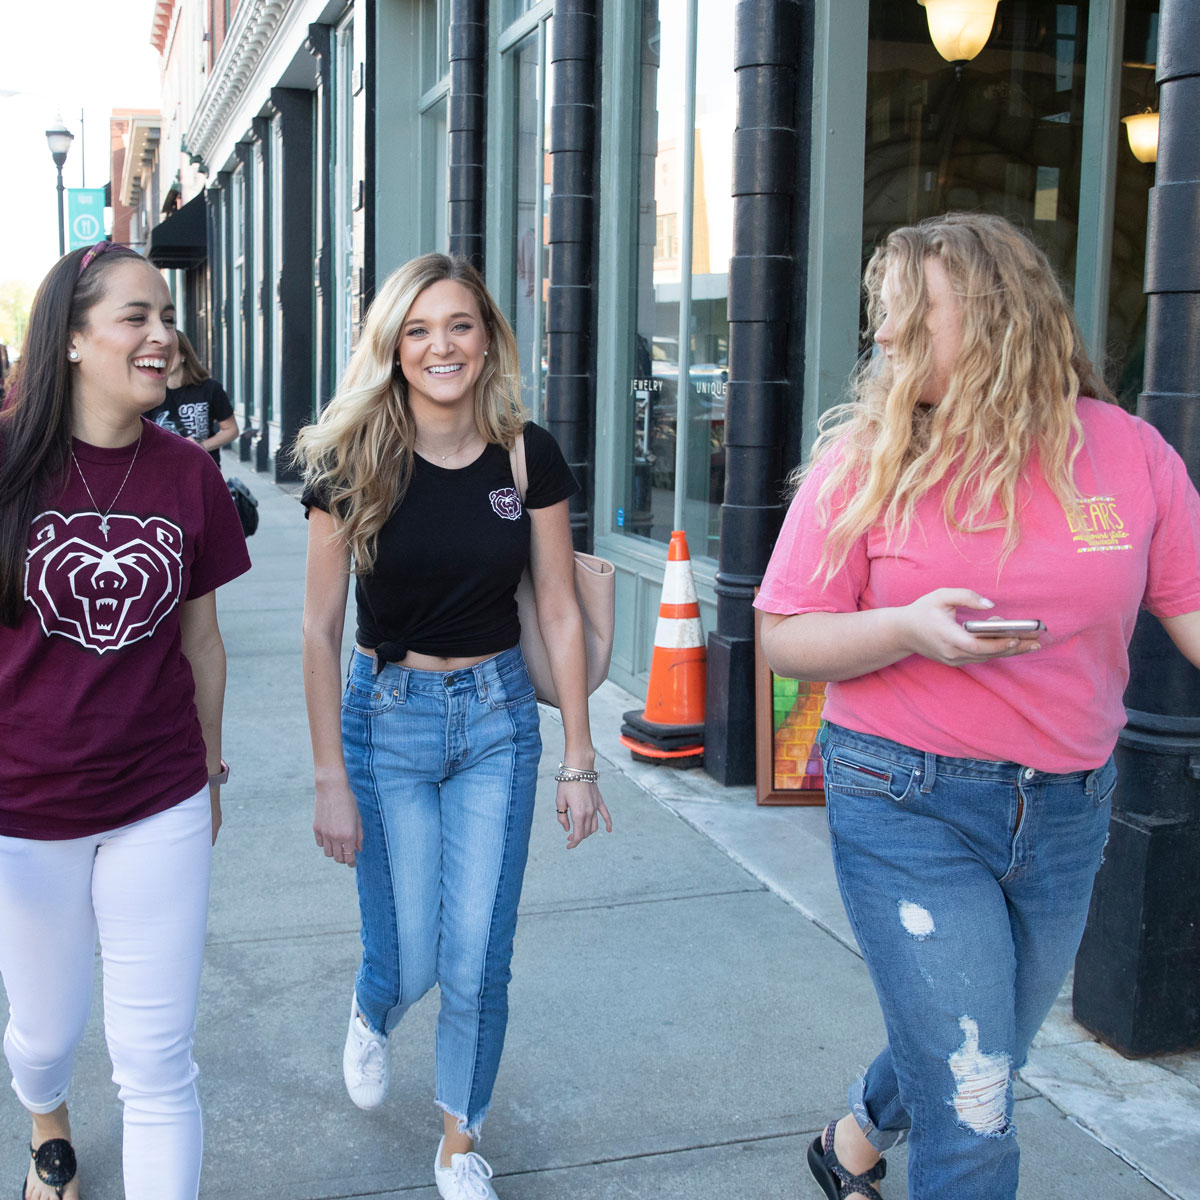 Three female students laugh as they walk downtown.